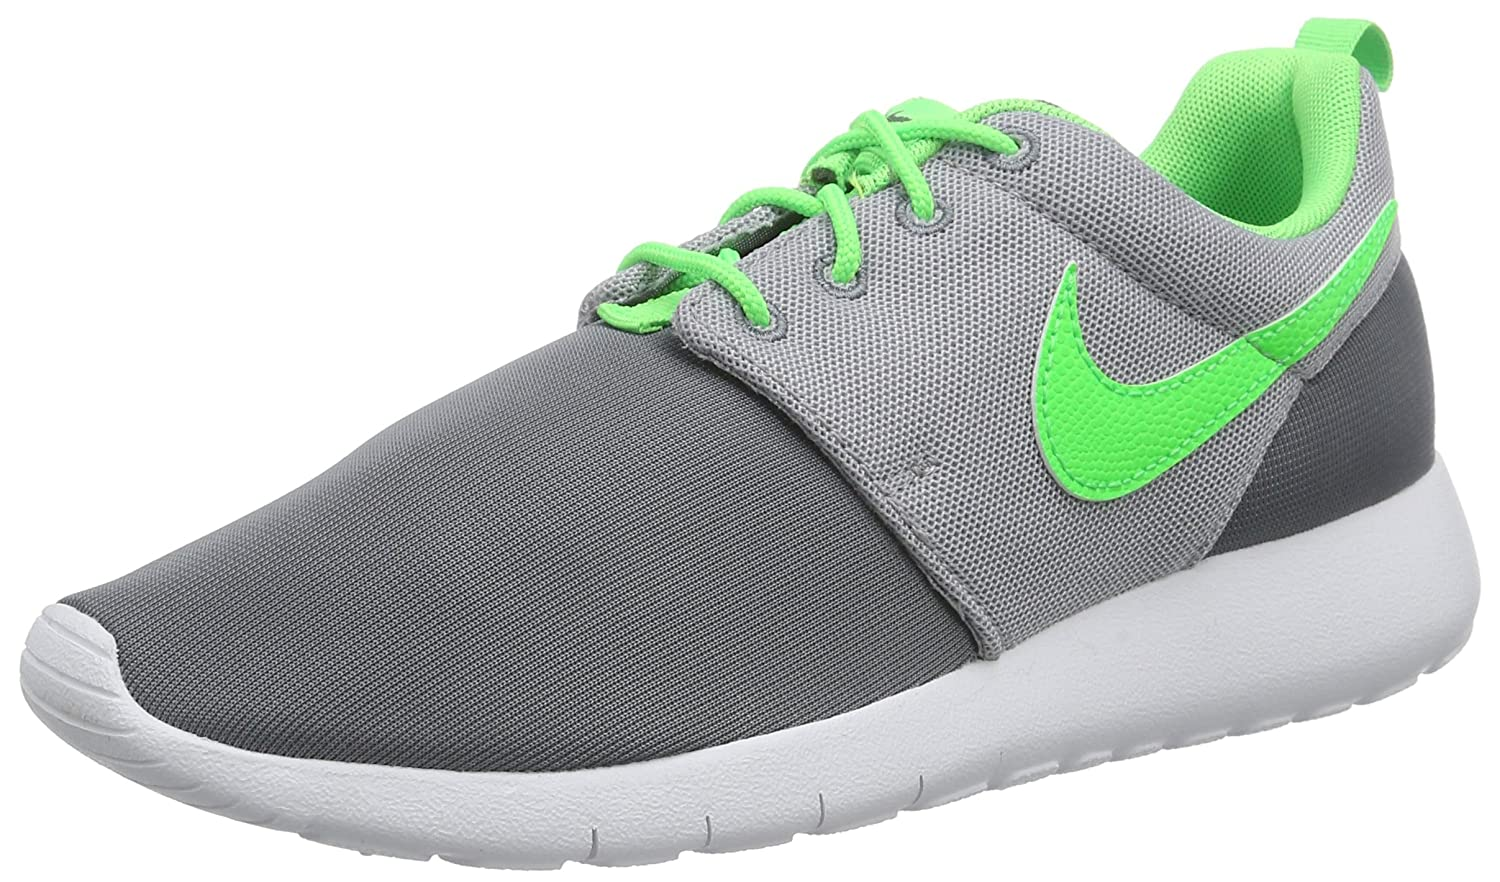 Nike Roshe One (GS) Zapatillas de Running, Niños 35.5 EU|Gris / Blanco (Cl Grey / Grn Strk-wlf Gry-white)